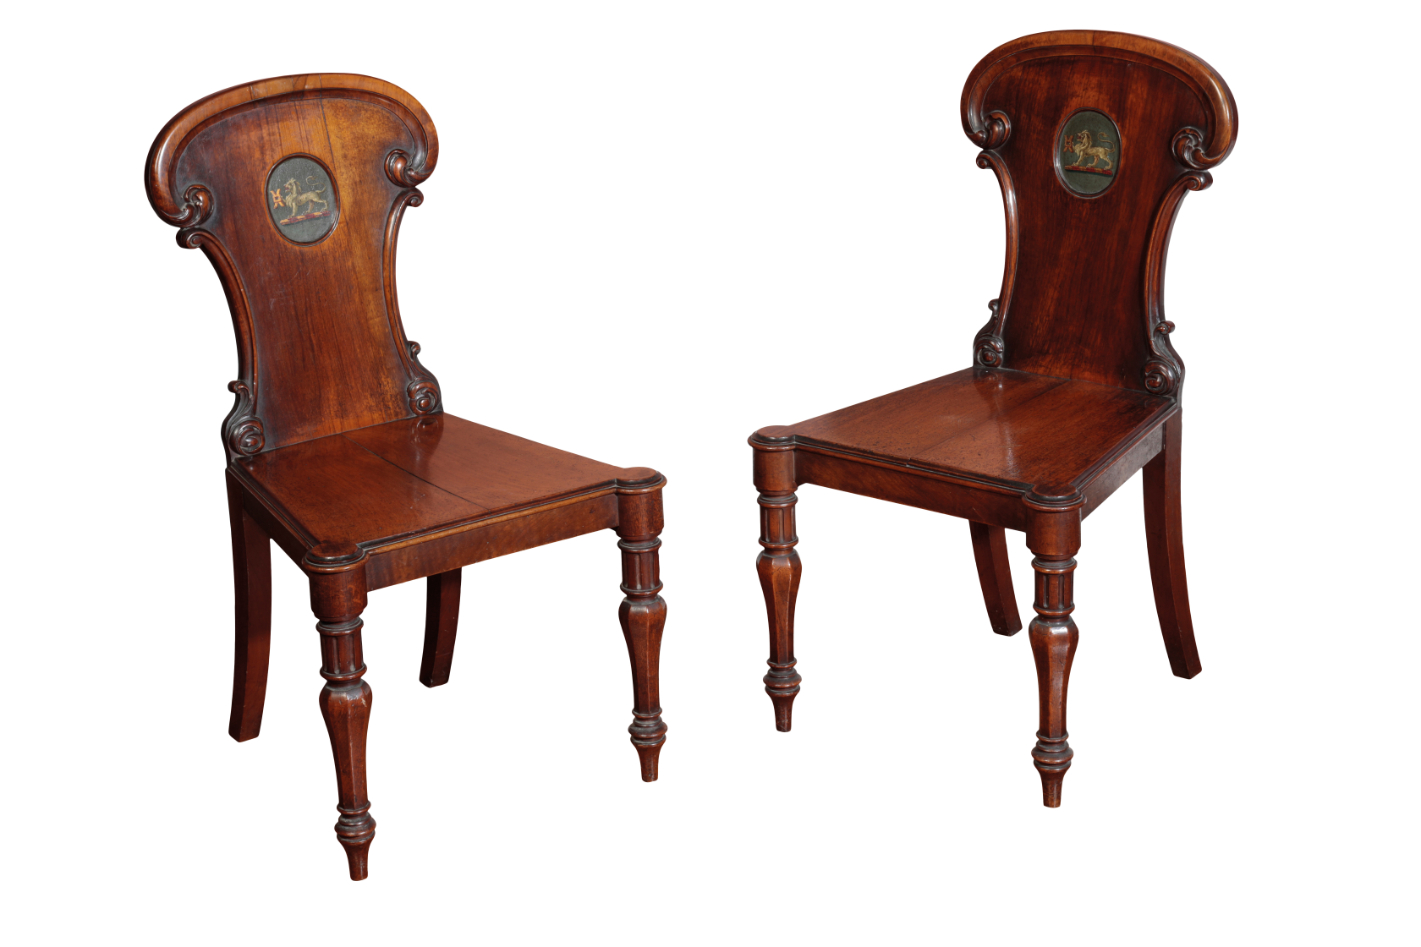 A PAIR OF LATE GEORGE III OR REGENCY SATINWOOD HALL CHAIRS, BY GILLOWS, - Image 2 of 2